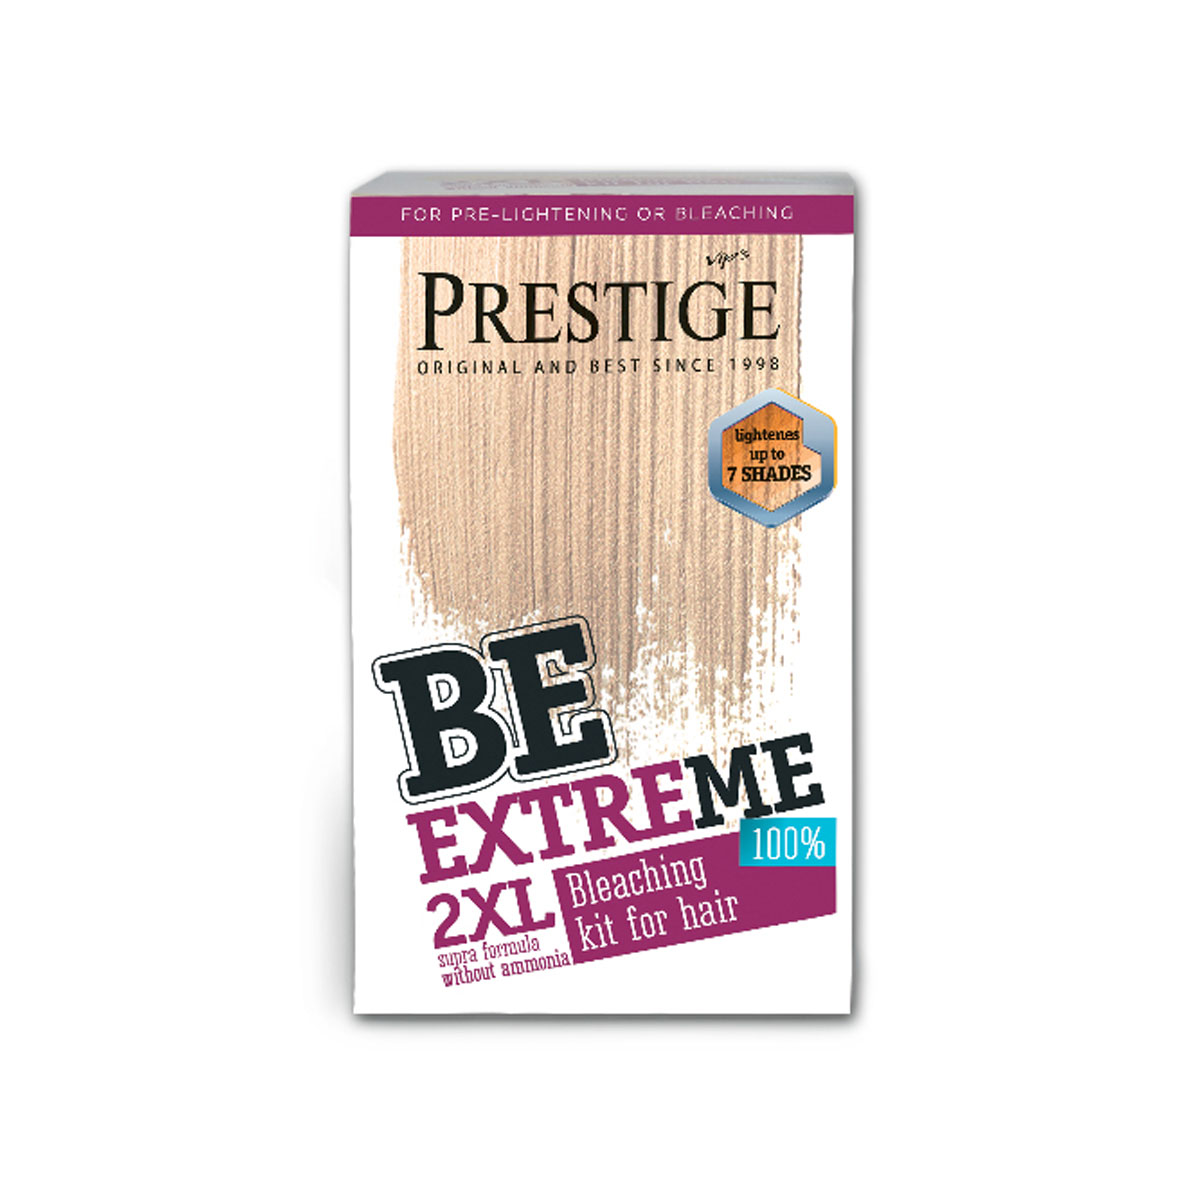 BE EXTREME HAIR TONER 2XL BLEACHING KIT